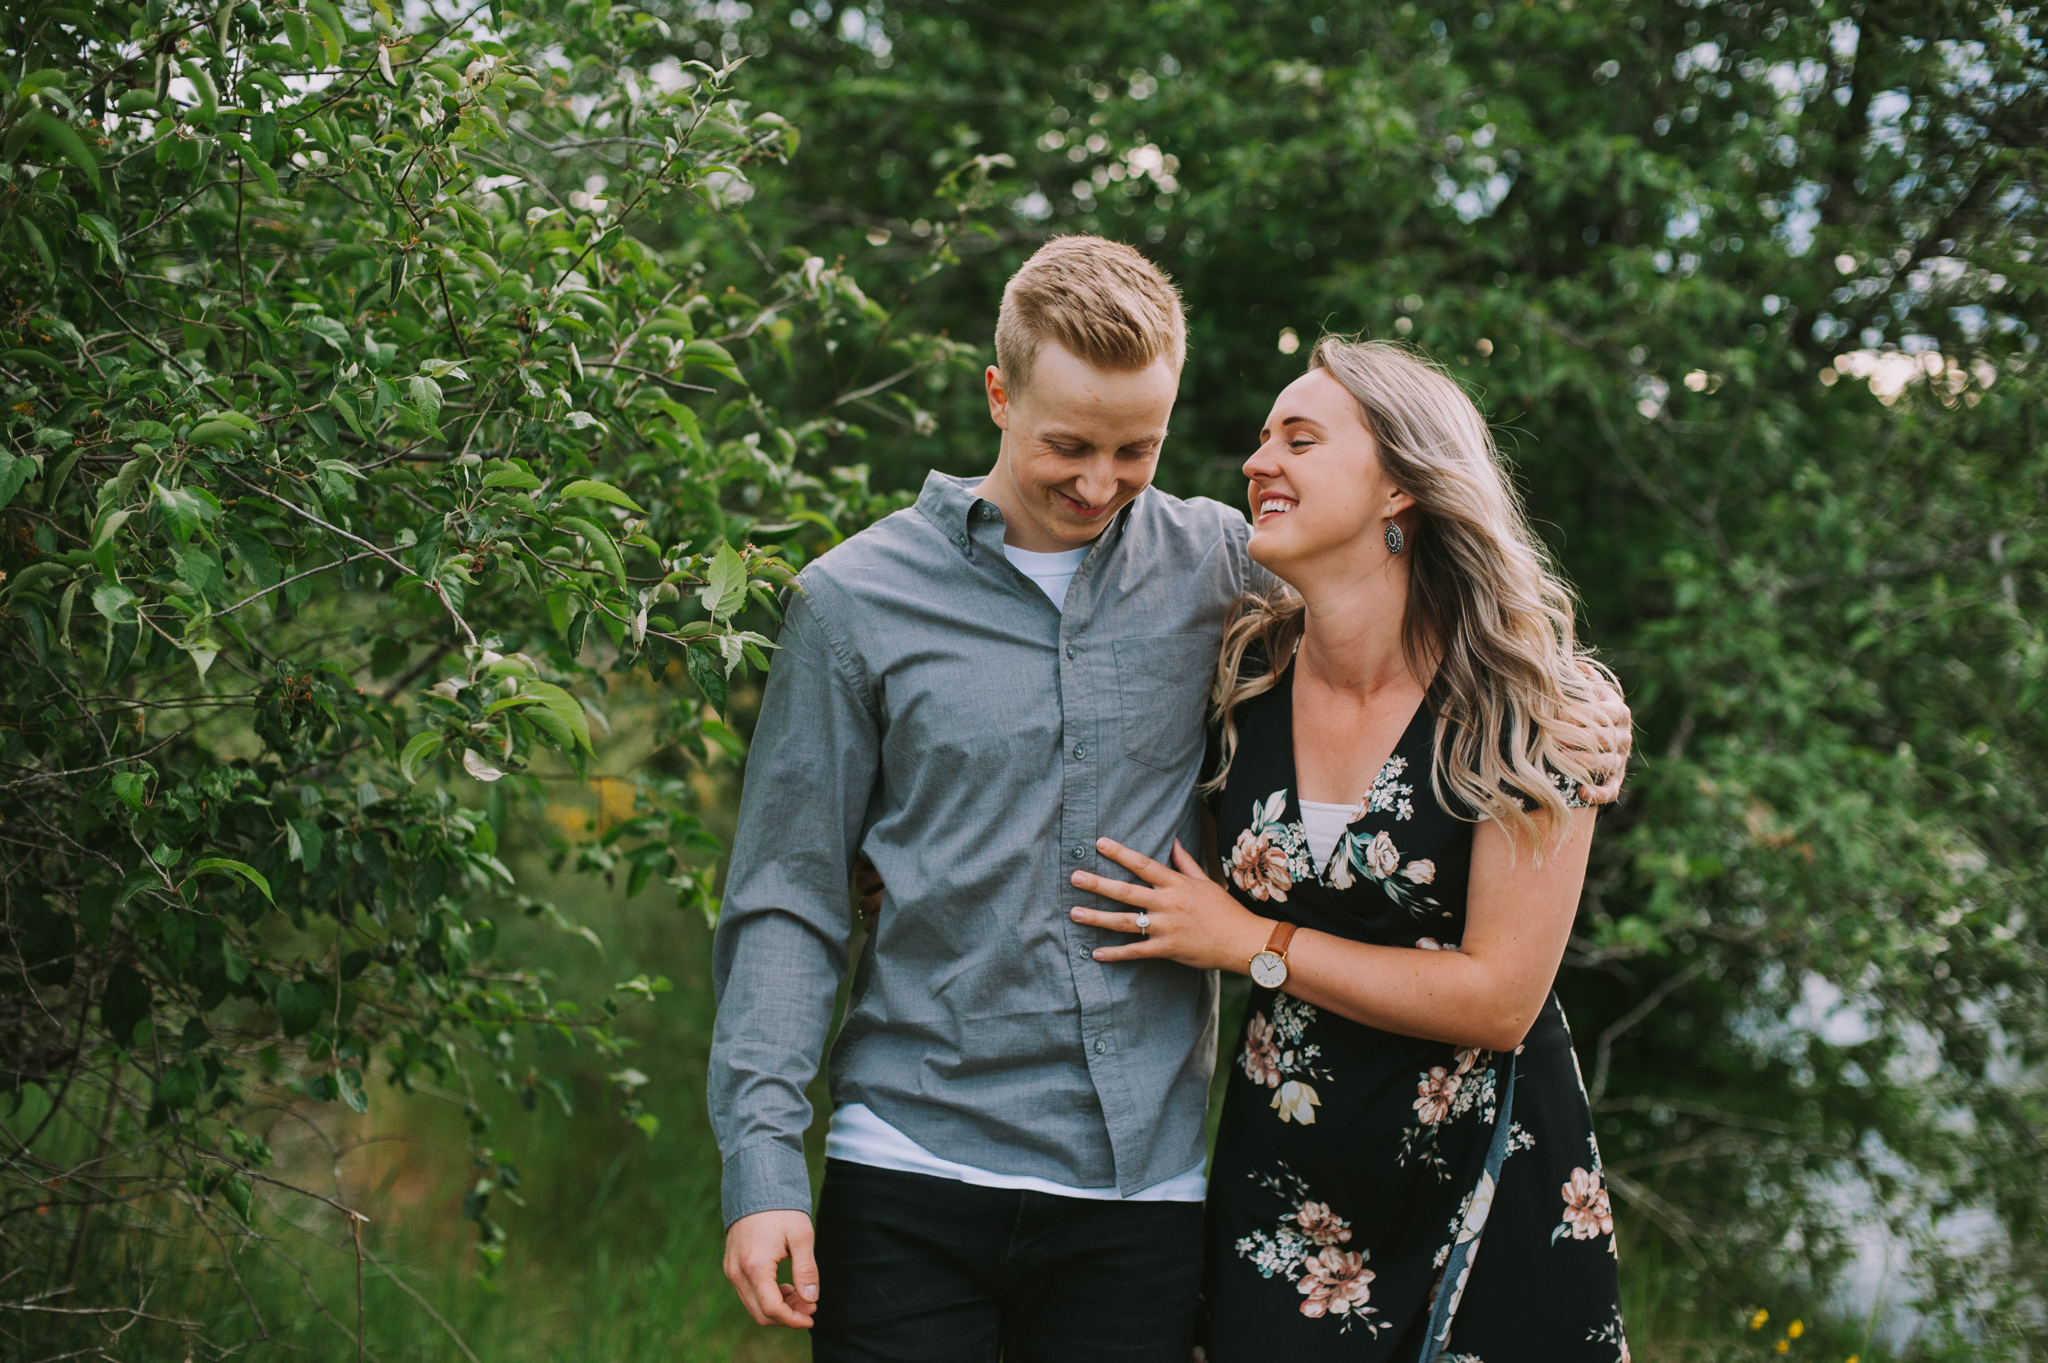 Leah+Rylan May2019_19.jpg